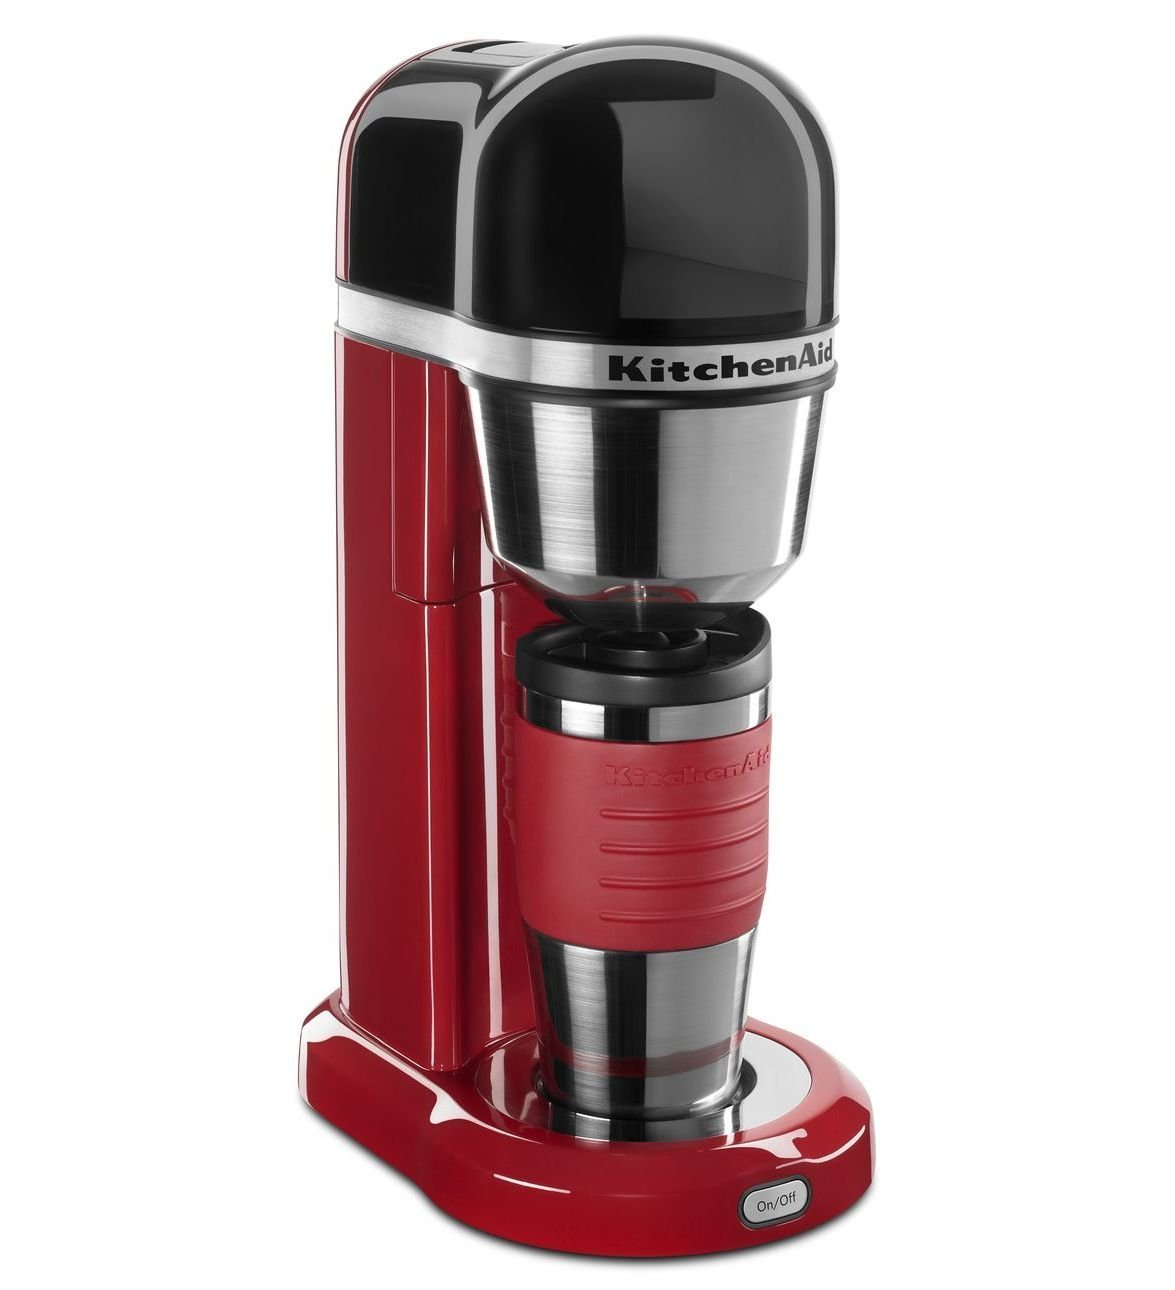 Kitchenaid red appliances personal coffee